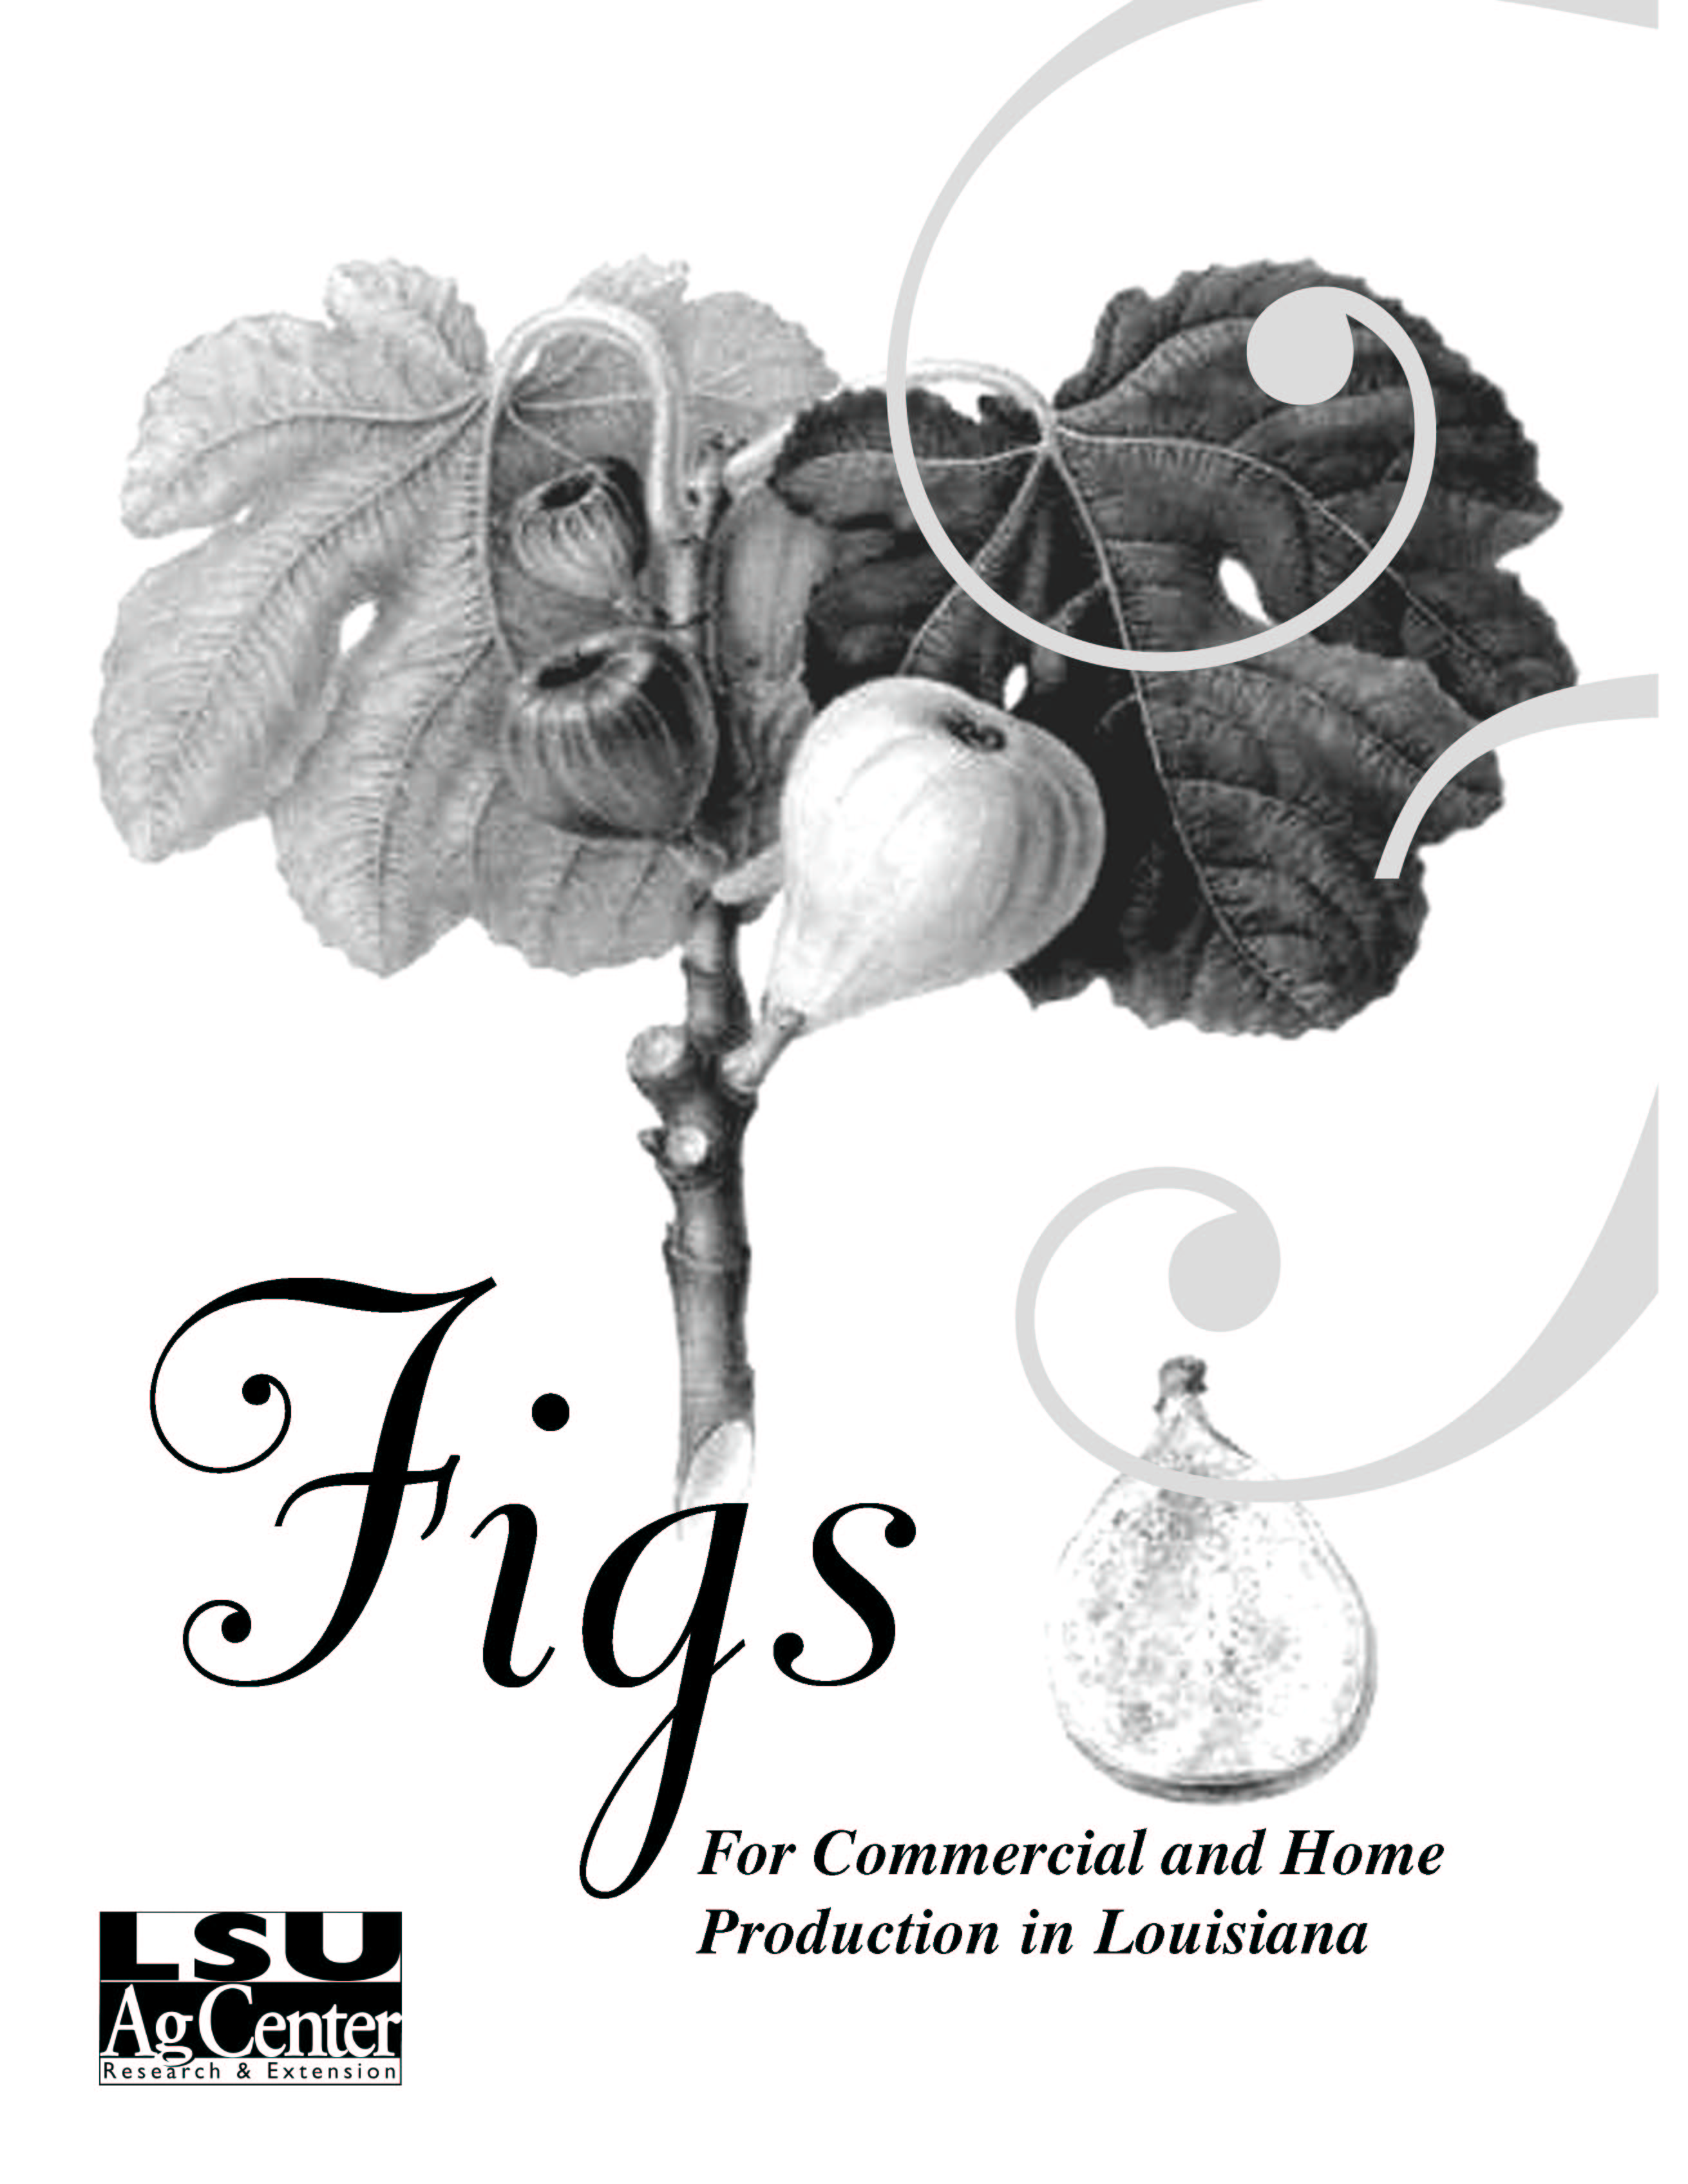 Figs for Commercial and Home Production in Louisiana